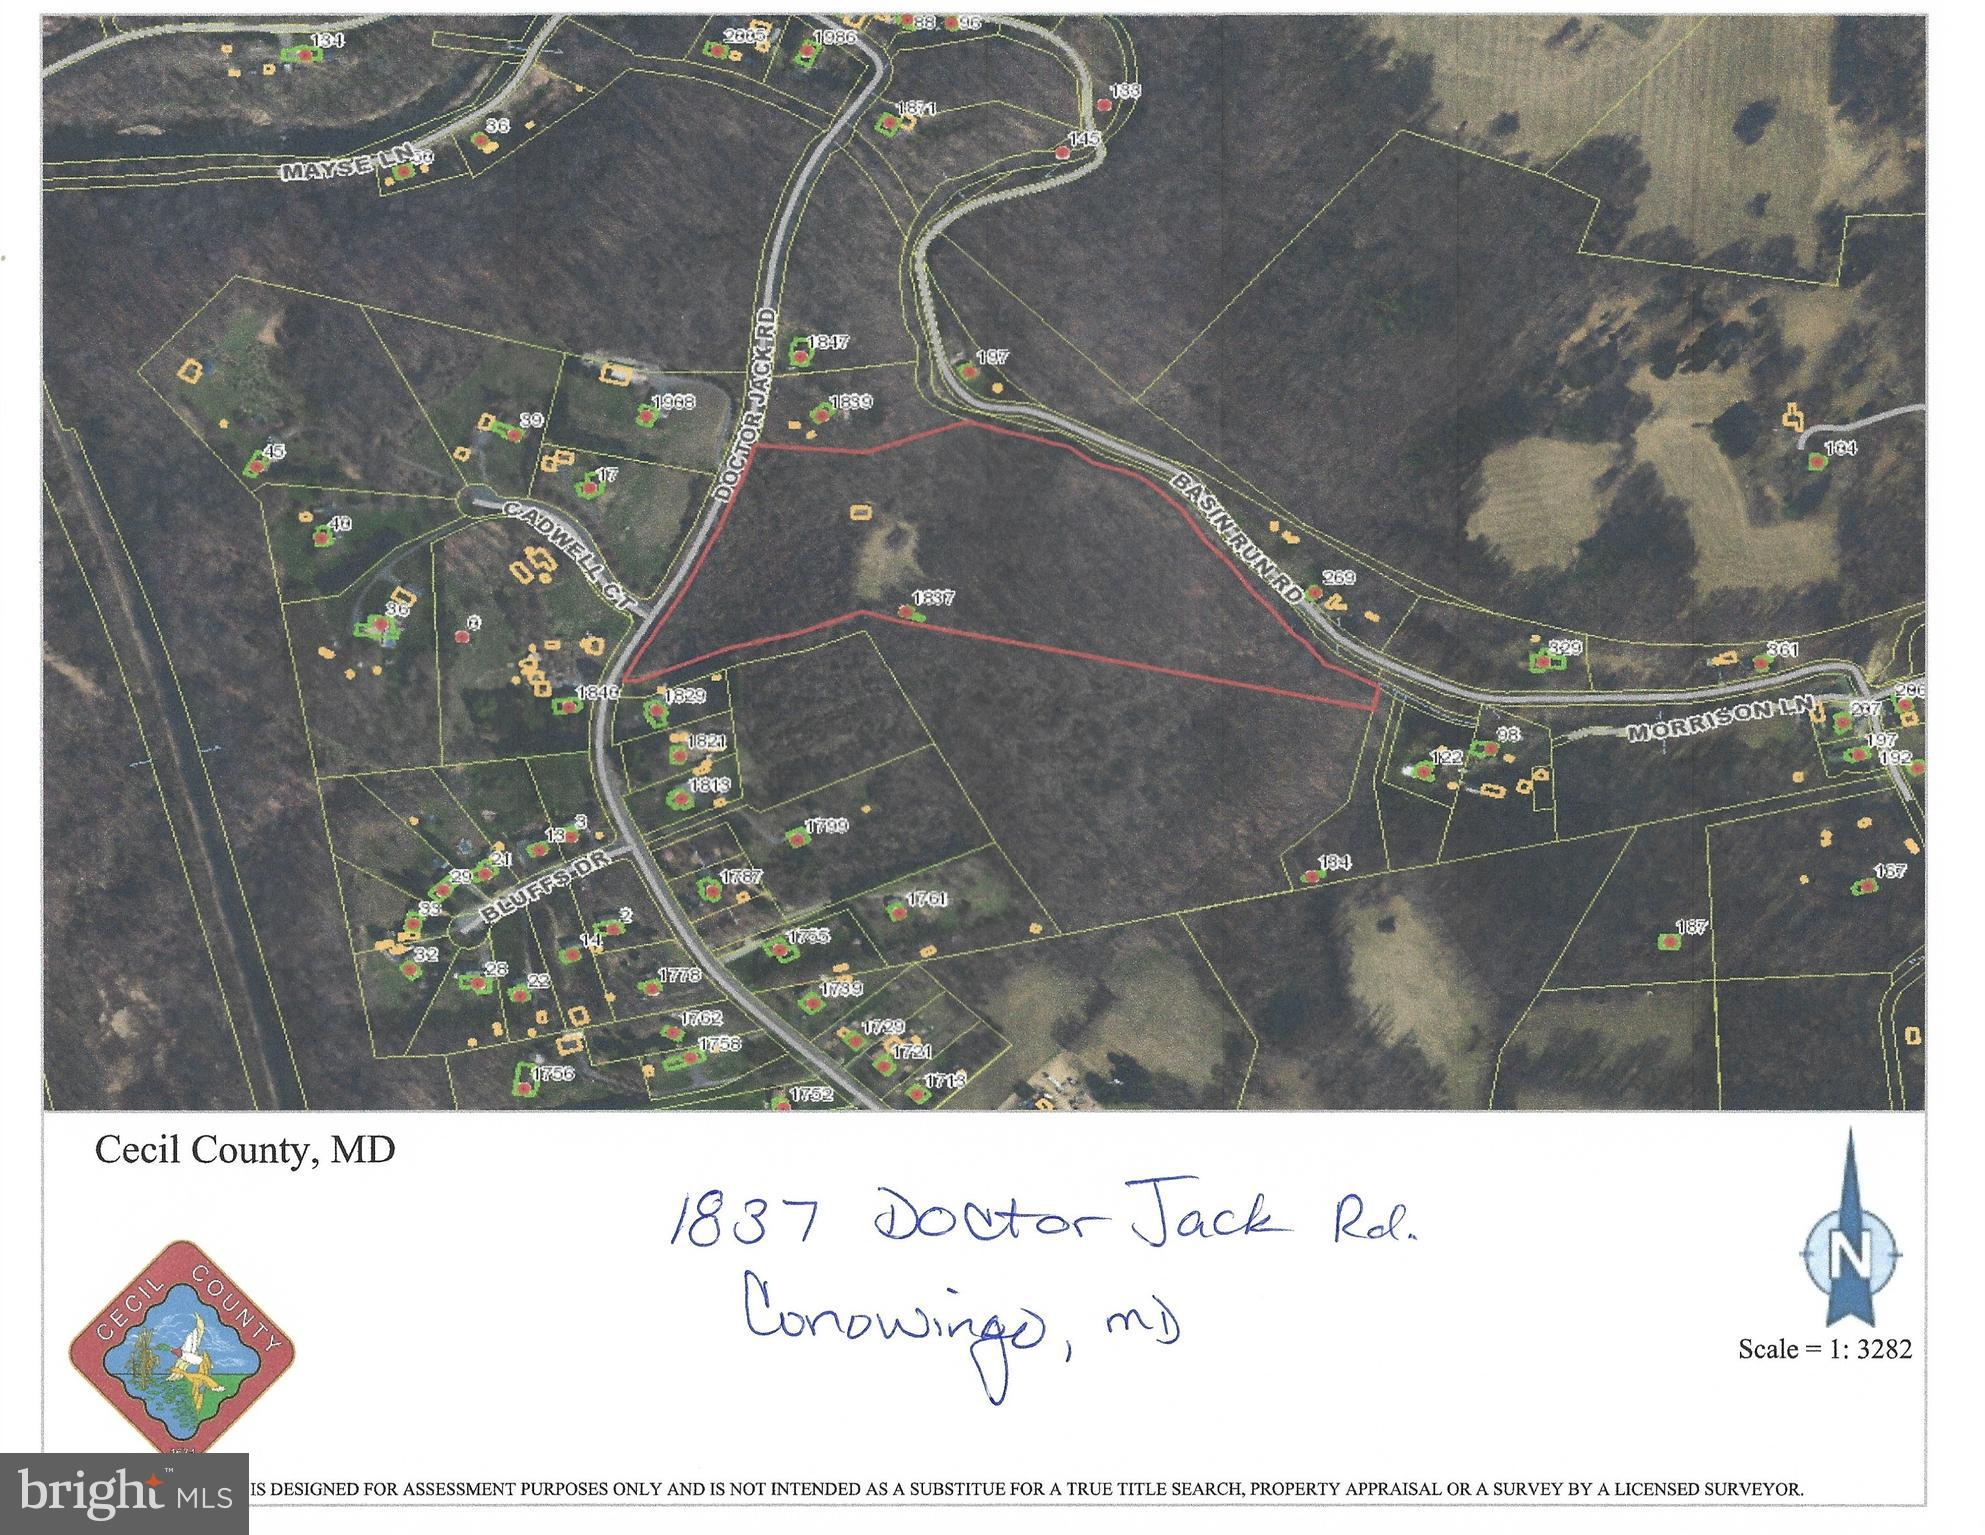 1837 DOCTOR JACK ROAD, CONOWINGO, MD 21918